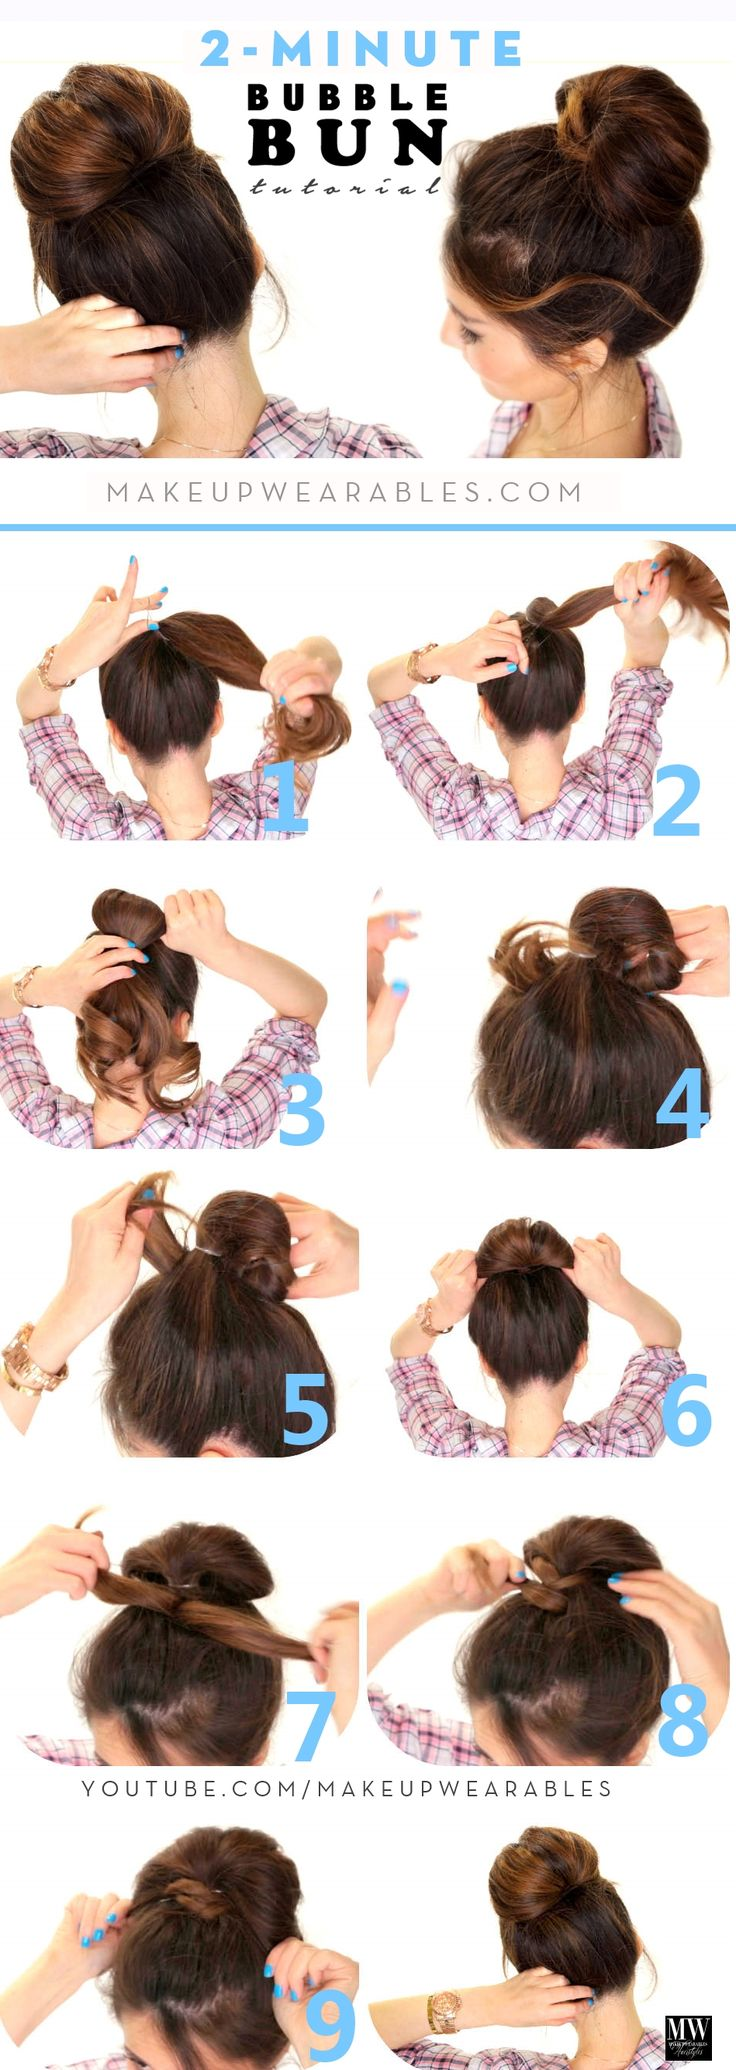 how to quick easy fan bun hairstyle for medium long hair tutorial: